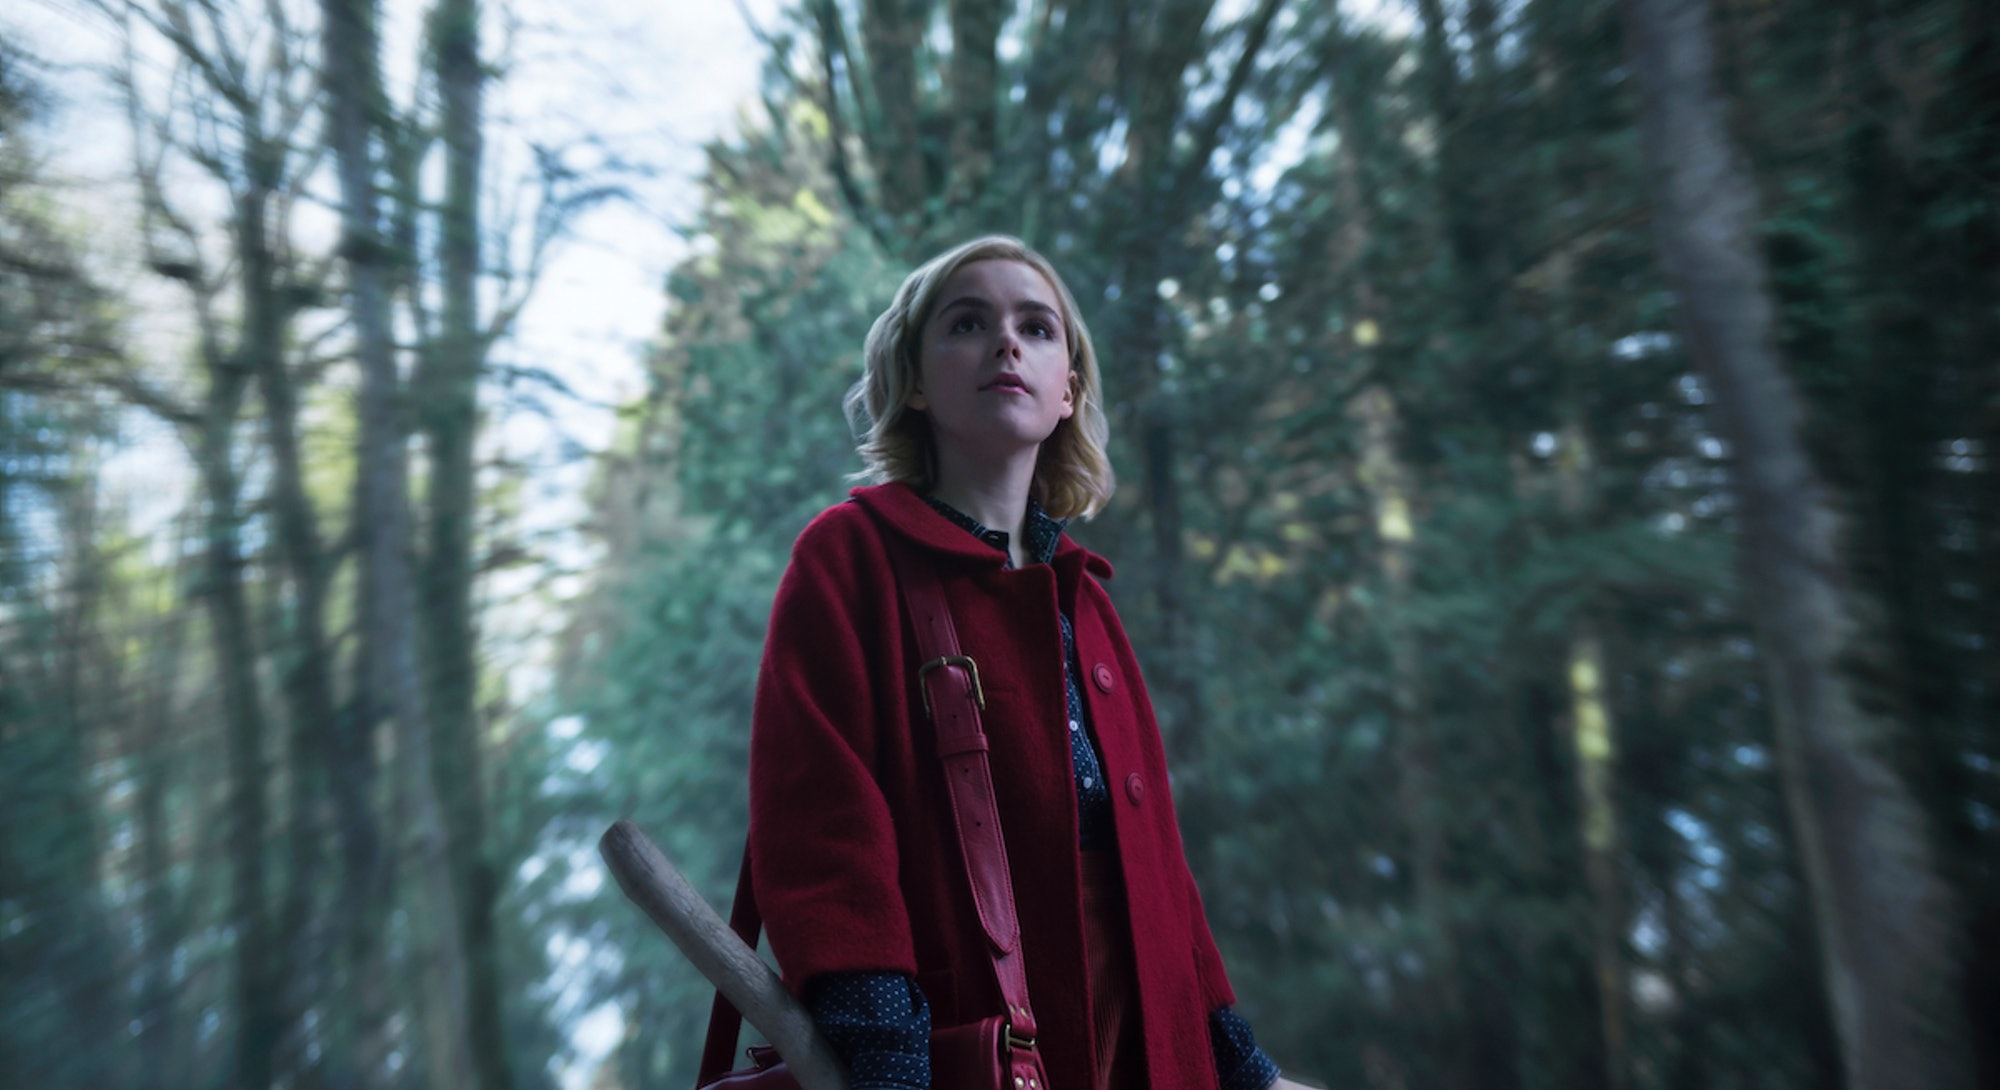 A still of Kiernan Shipka, from Chilling Adventures of Sabrina, standing in a wooded area, wearing a red cape